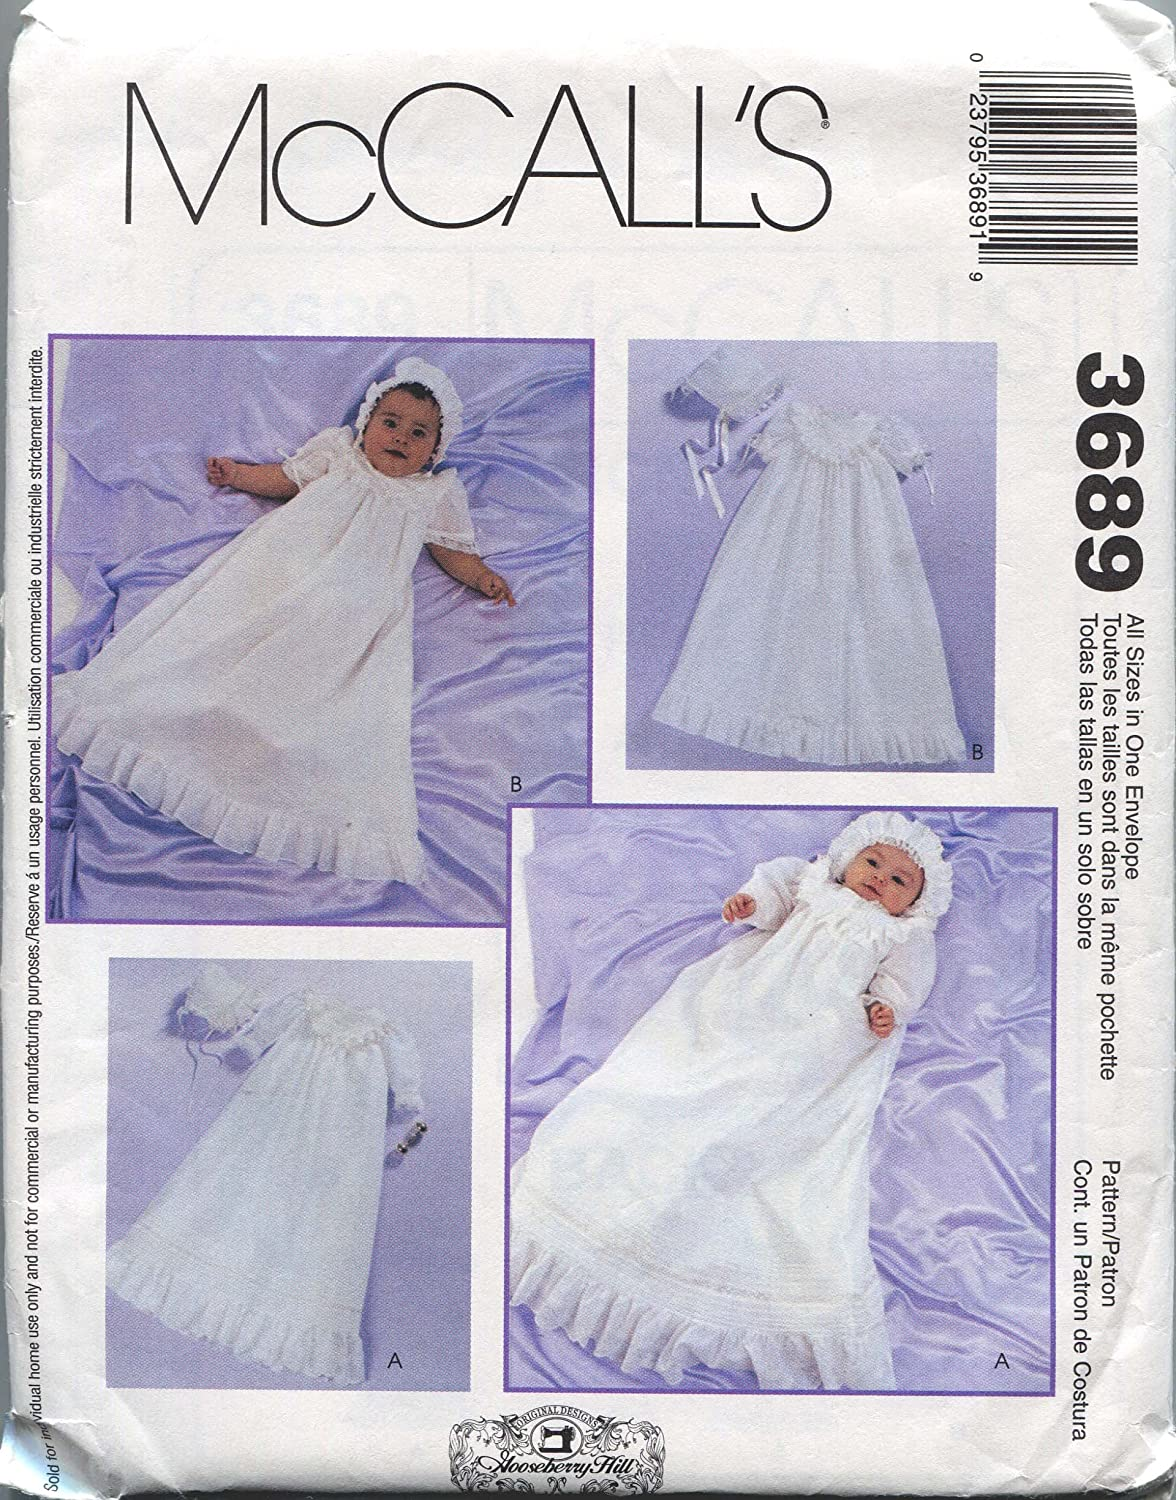 MCCALLS PATTERN 3689 INFANTS CHRISTENING GOWNS, SLIPS AND BONNETS ALL SIZES